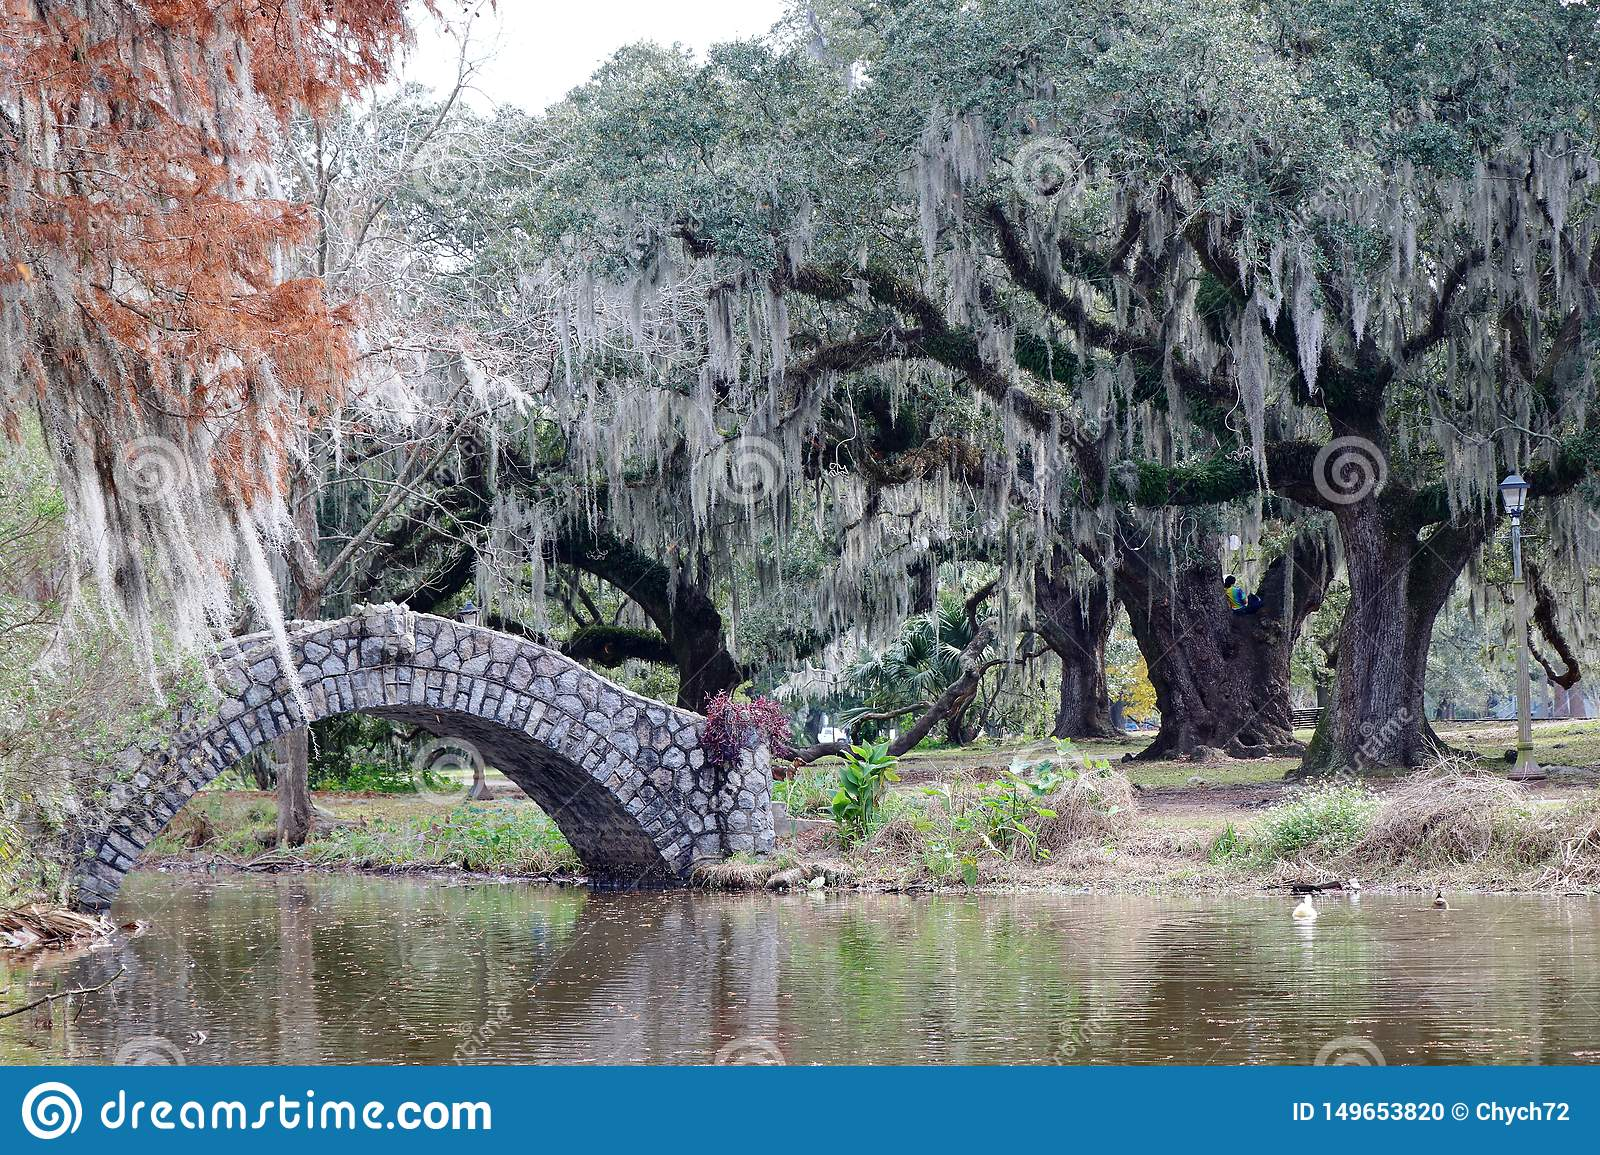 A beautiful scenic view of the city park of New Orleans, Louisiana